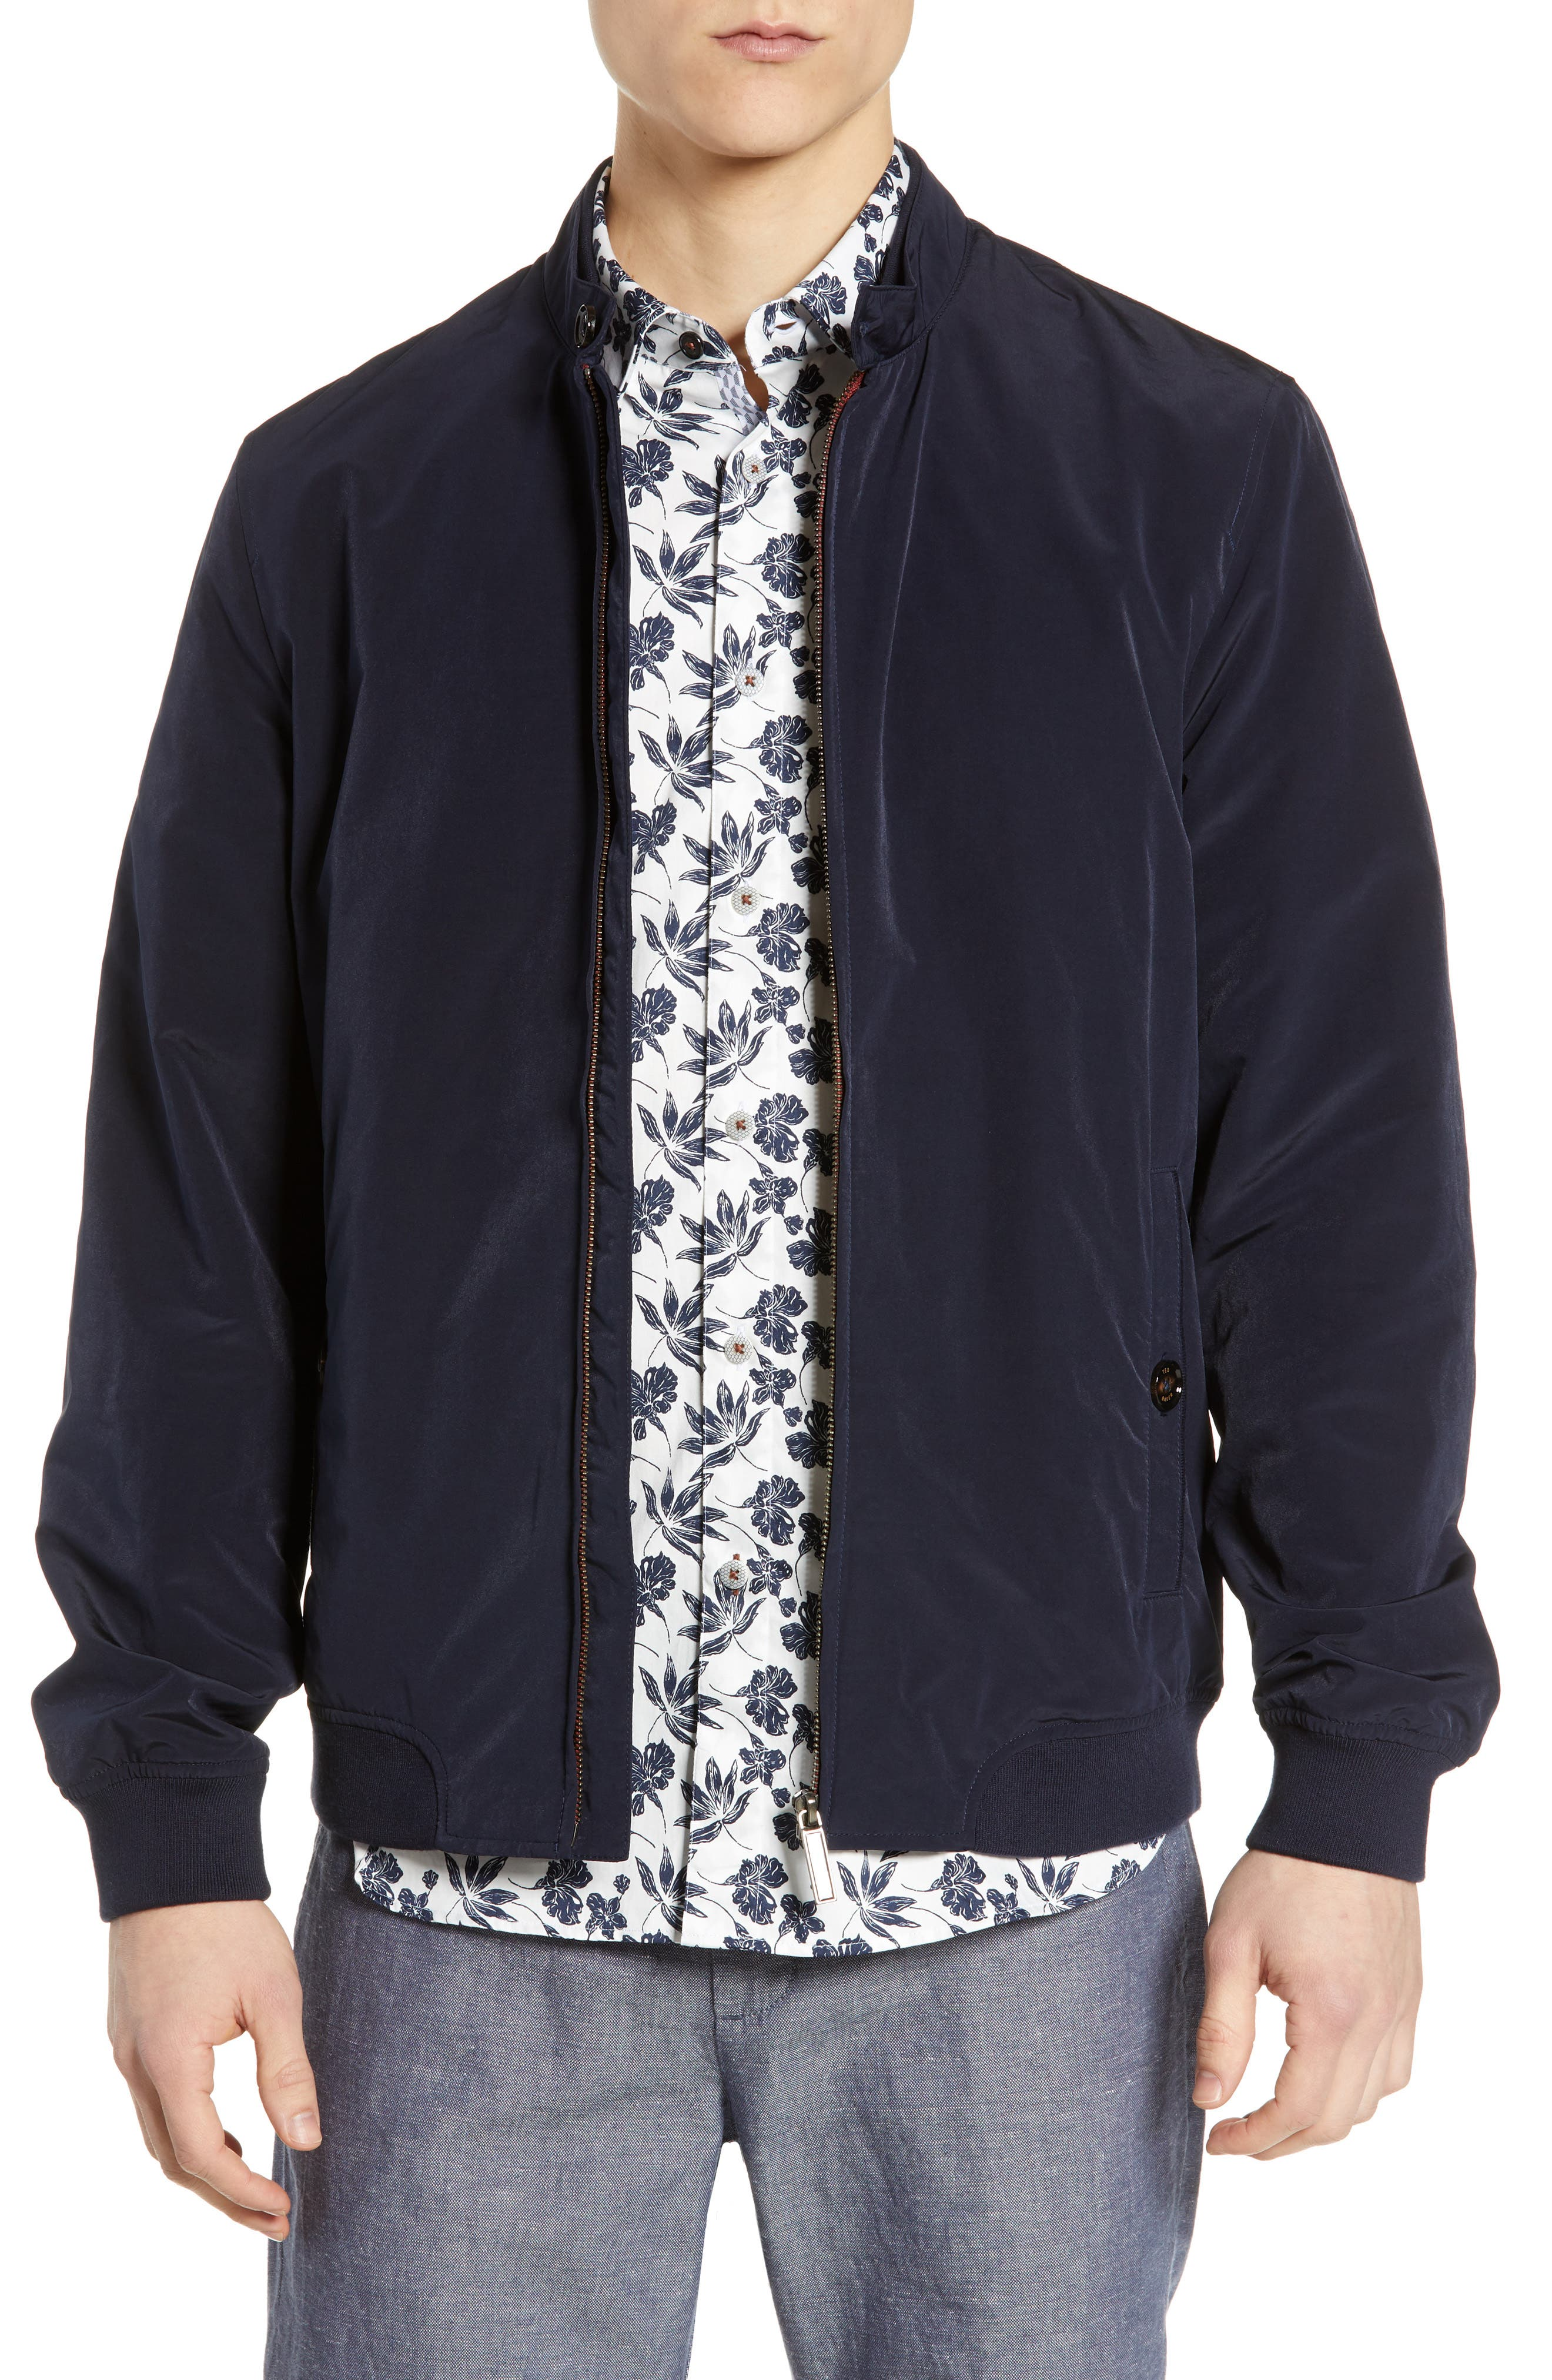 TED BAKER LONDON Aroma Slim Fit Bomber Jacket, Main, color, NAVY